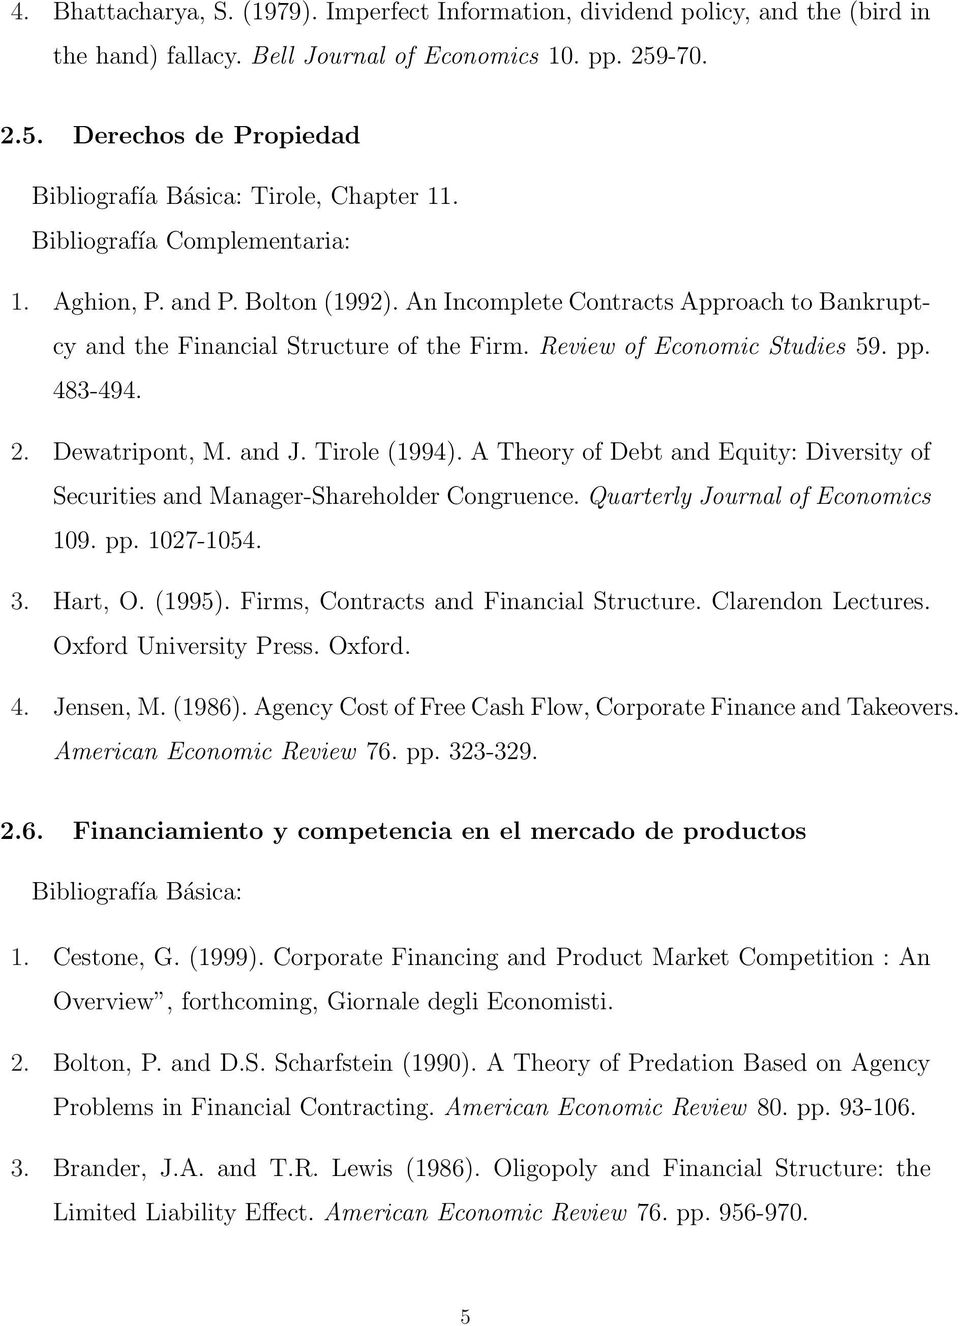 Review of Economic Studies 59. pp. 483-494. 2. Dewatripont, M. and J. Tirole (1994). A Theory of Debt and Equity: Diversity of Securities and Manager-Shareholder Congruence.